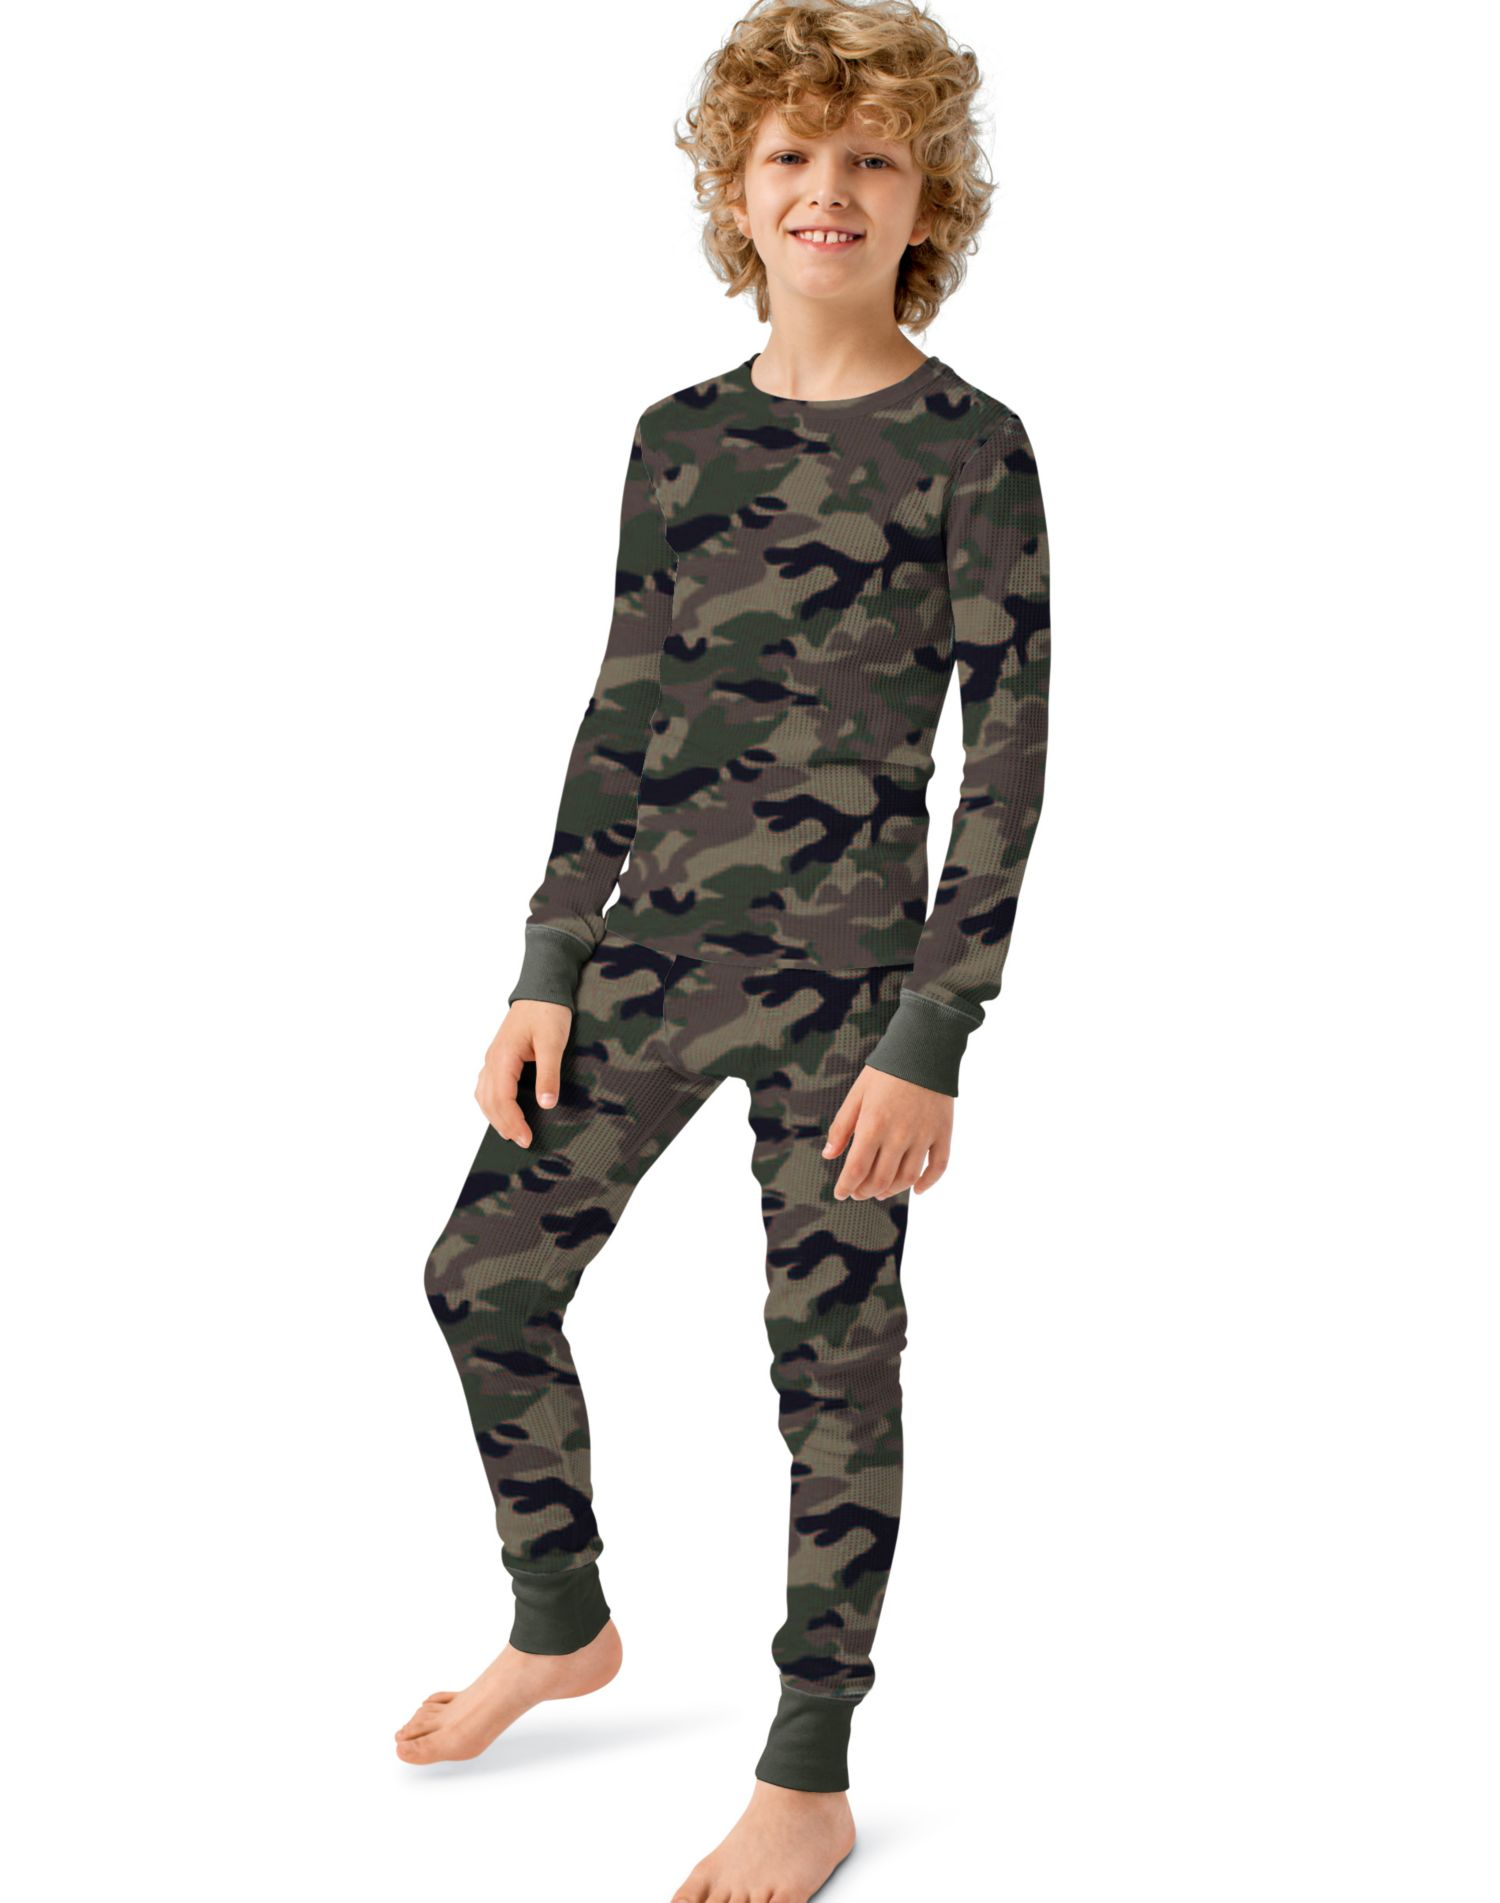 Hanes 24102 - Boys' Camo Thermal Underwear Set